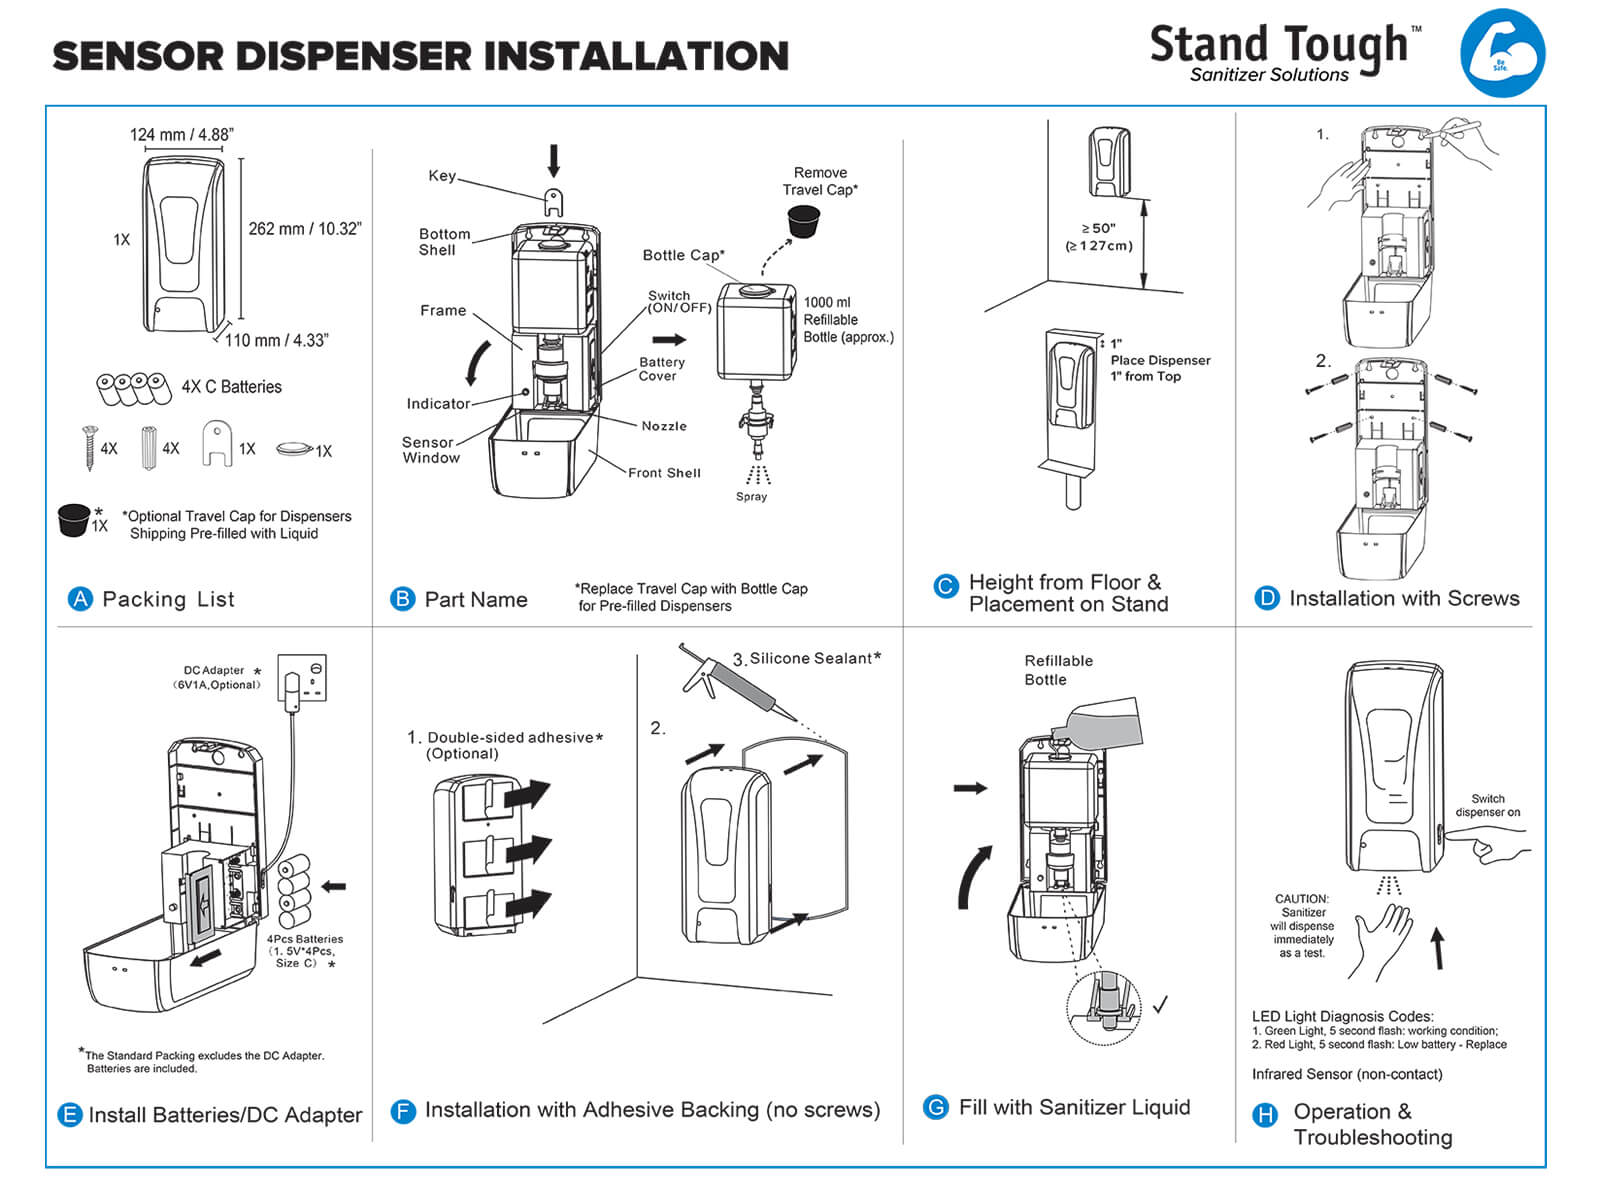 OPTIONAL Automatic Sanitizer Dispenser with Touch-Less Sensor